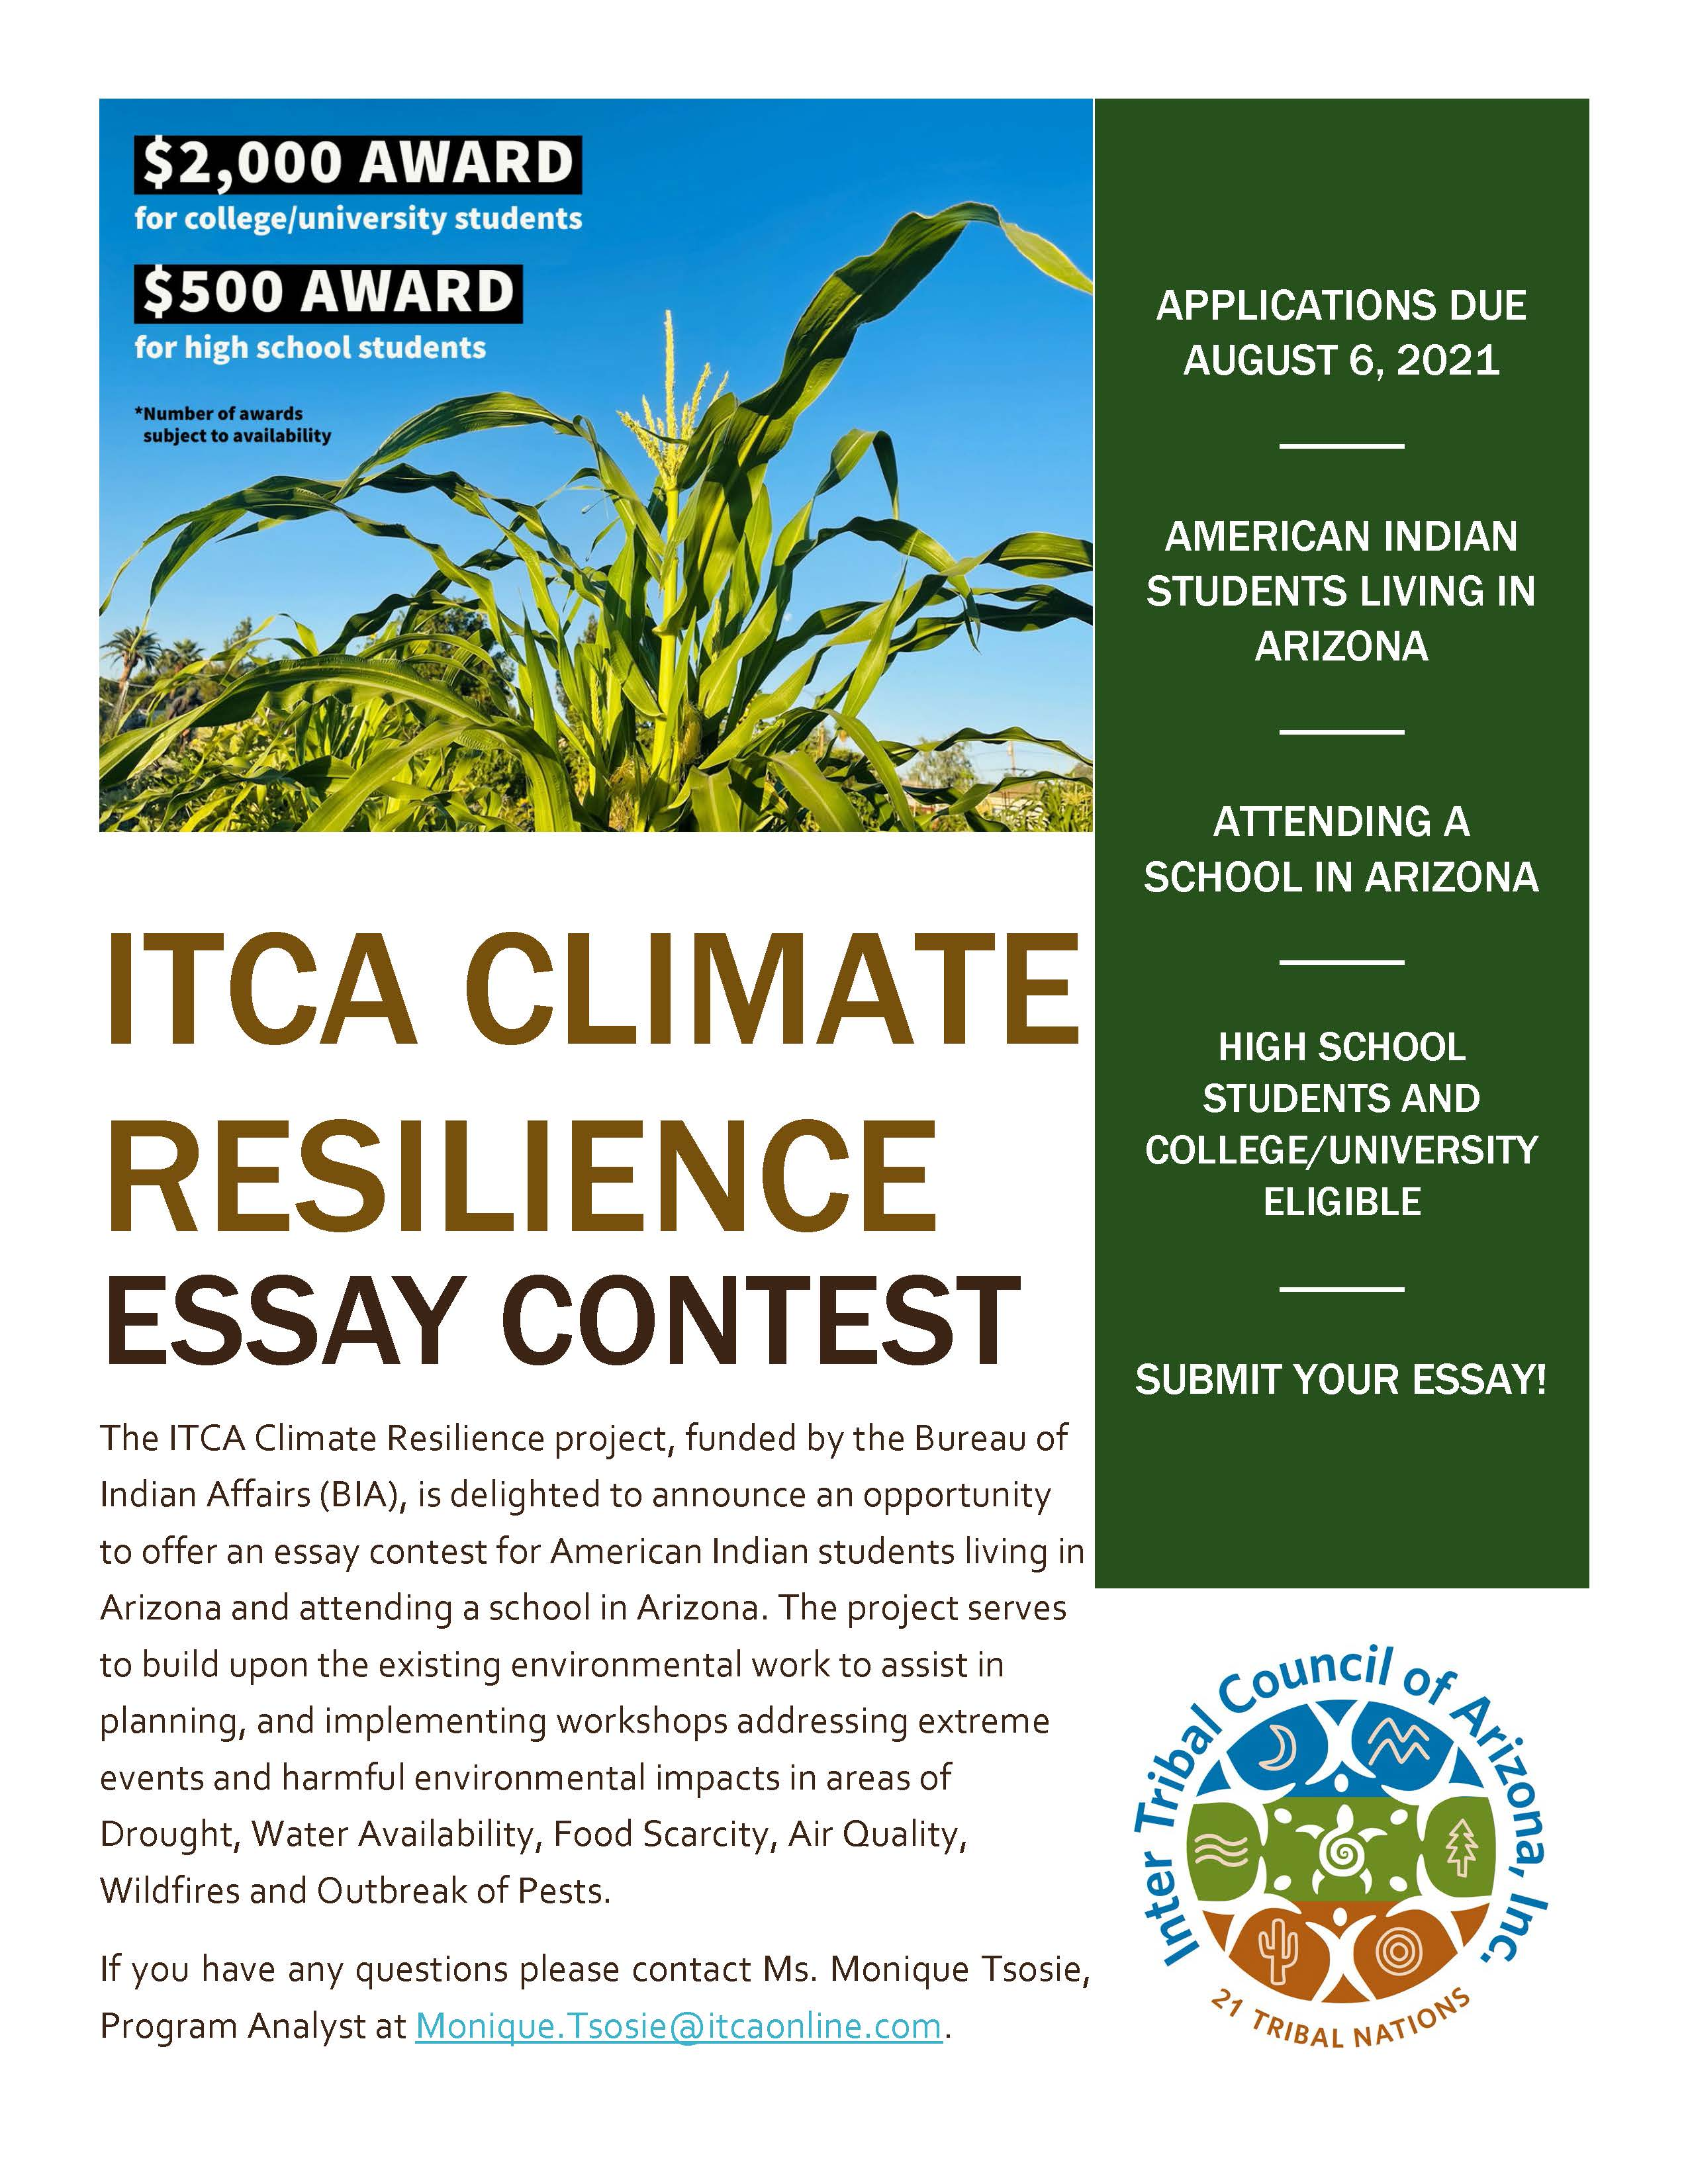 Climate Resilience Fall 2021 Essay Contest Announcement